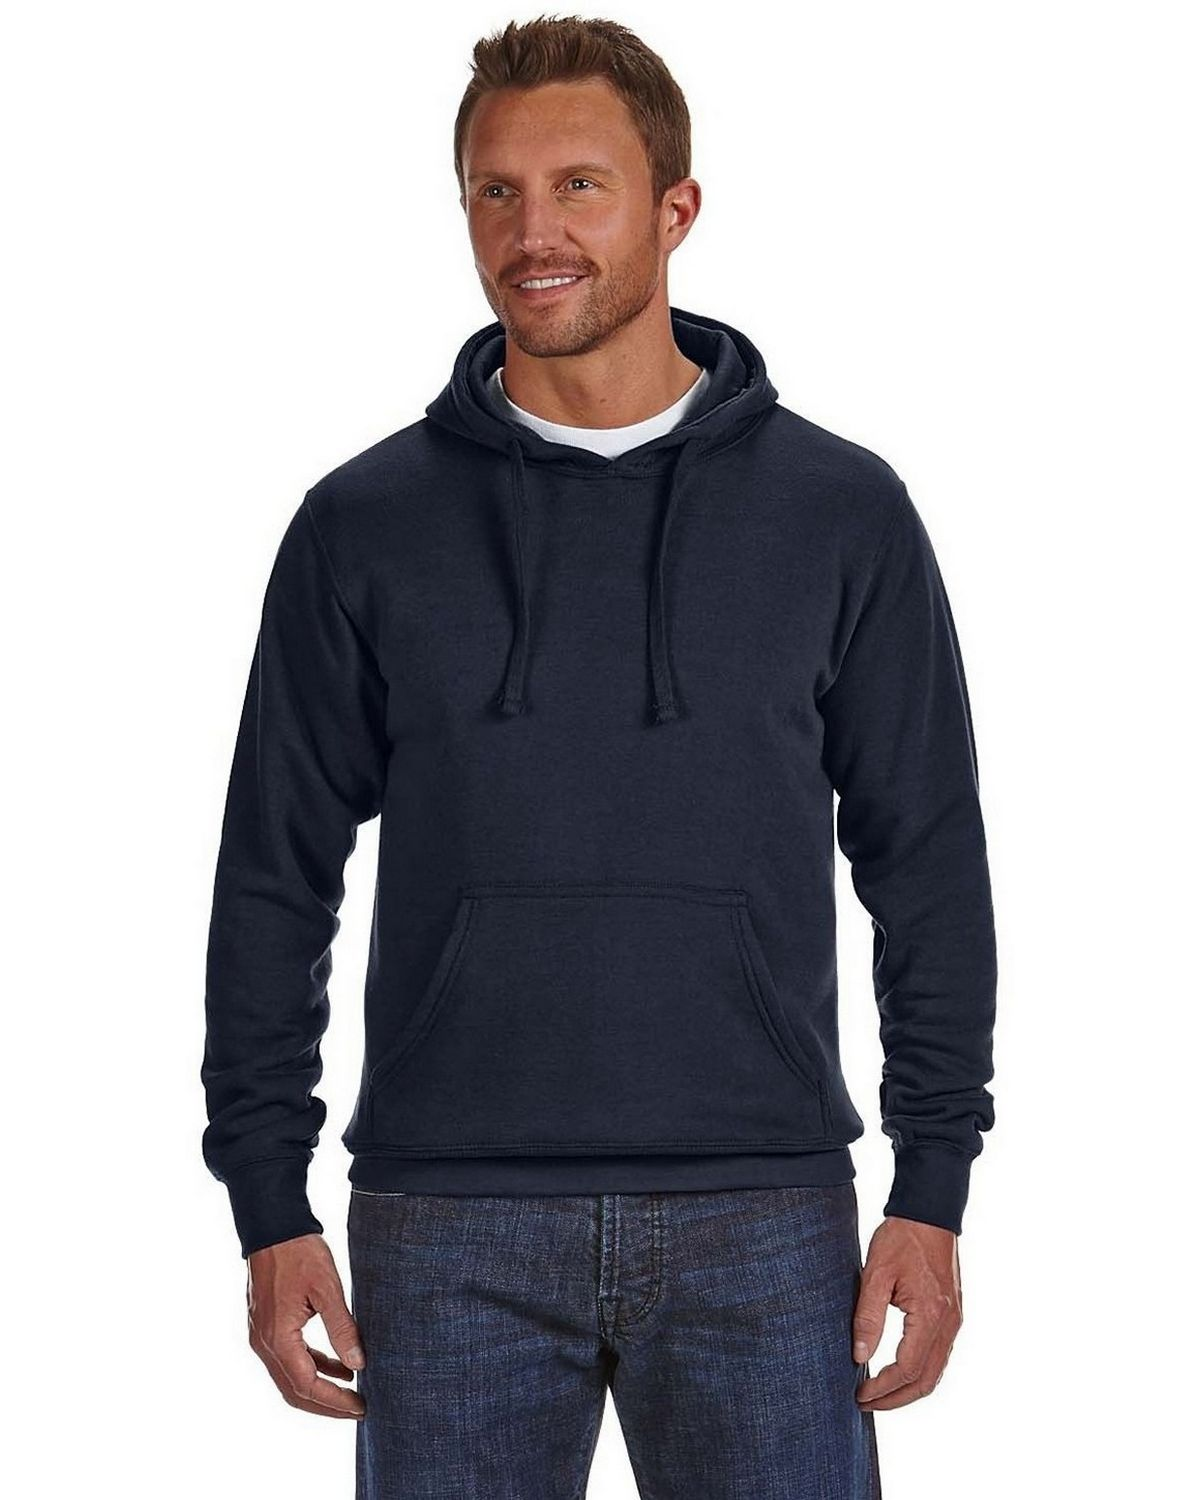 J America JA8620 Cloud Pullover Fleece Hood - Navy - S JA8620